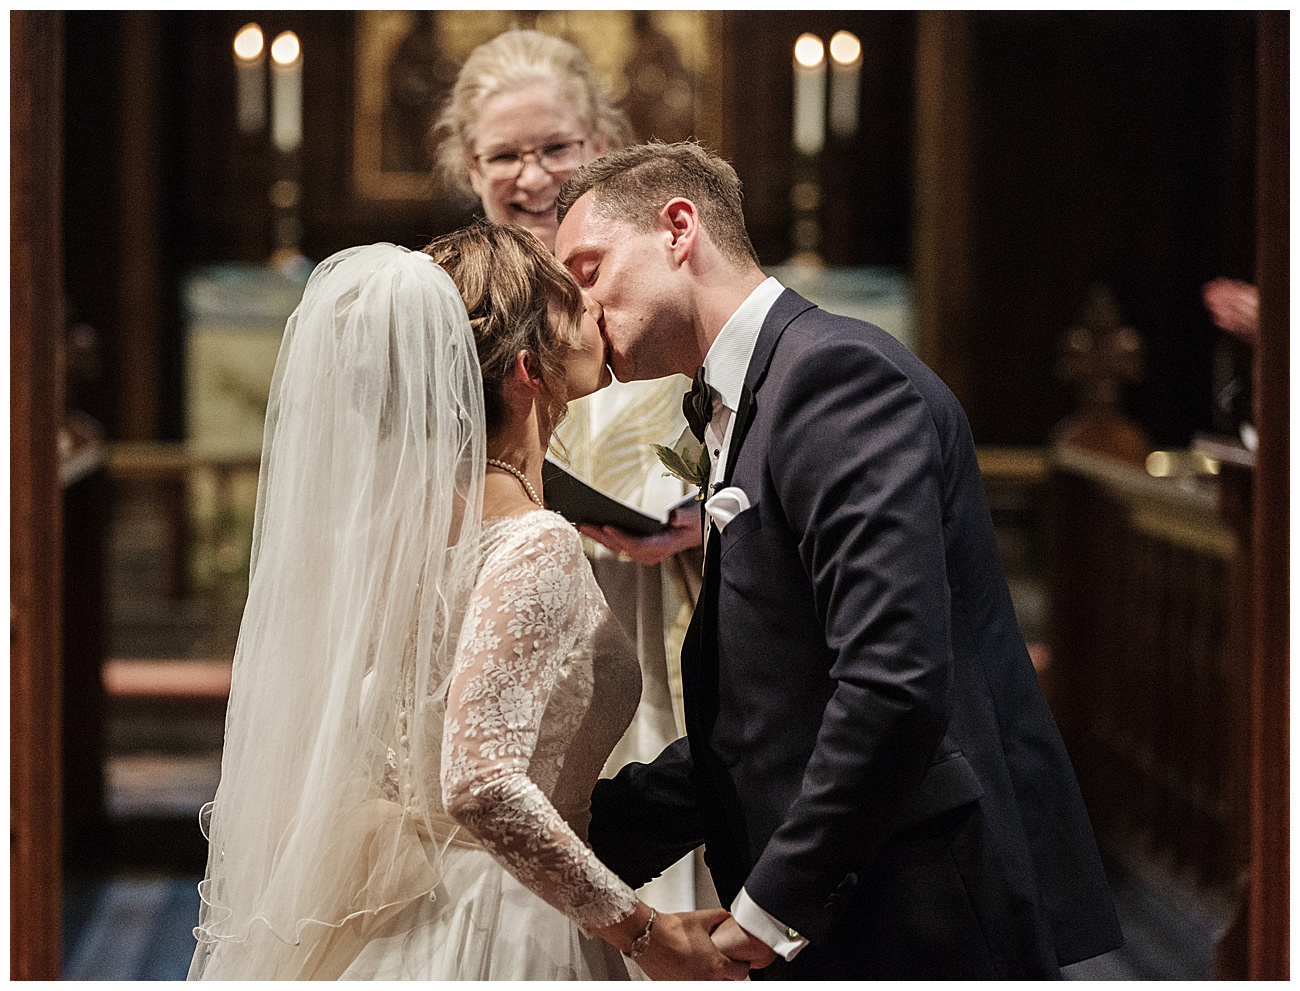 bride and groom kiss at the alter